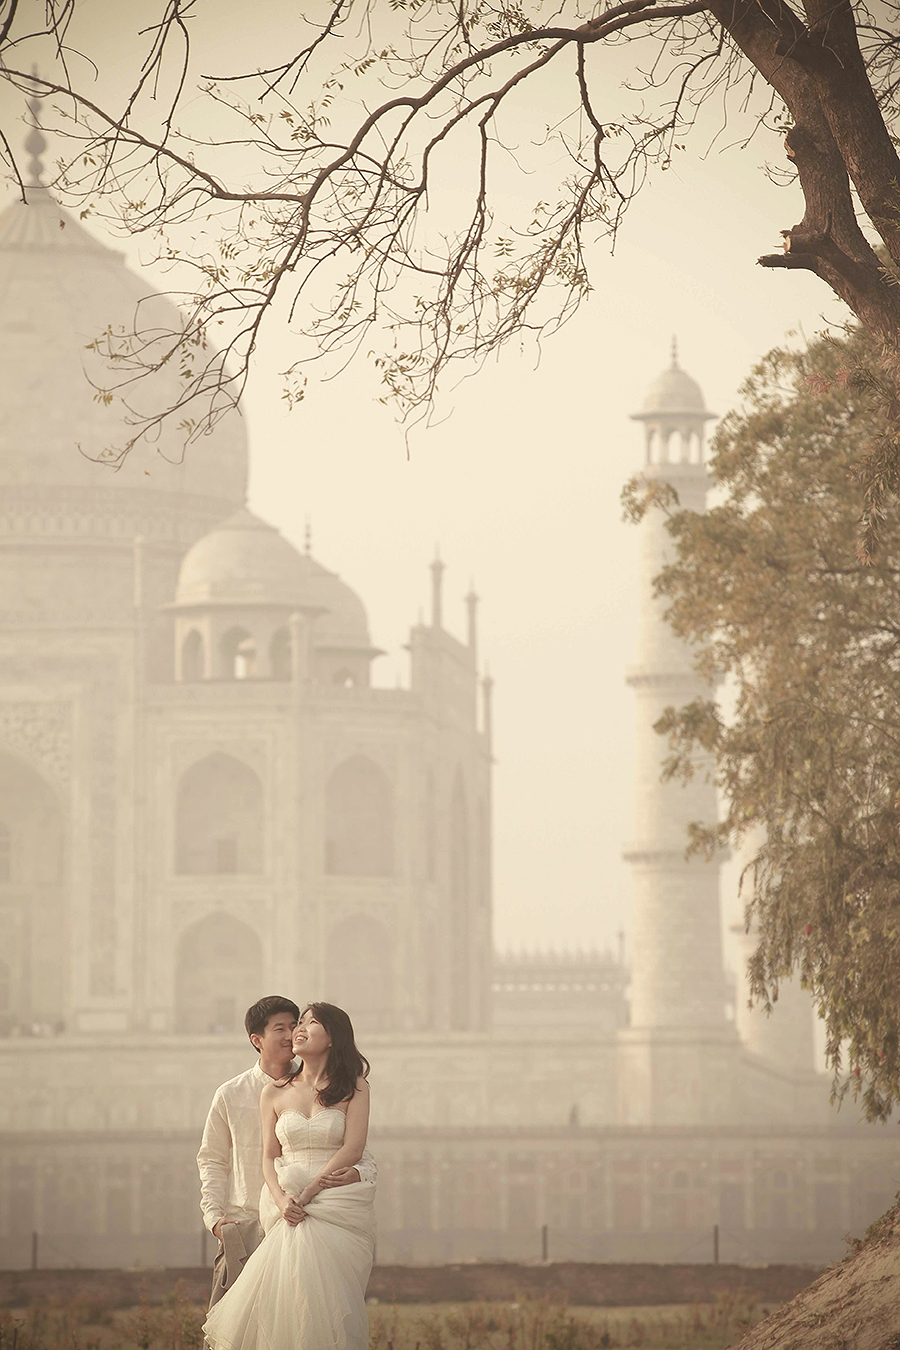 india rajasthan . wedding photography by kurt ahs . shihao+sofie . 0529.jpg